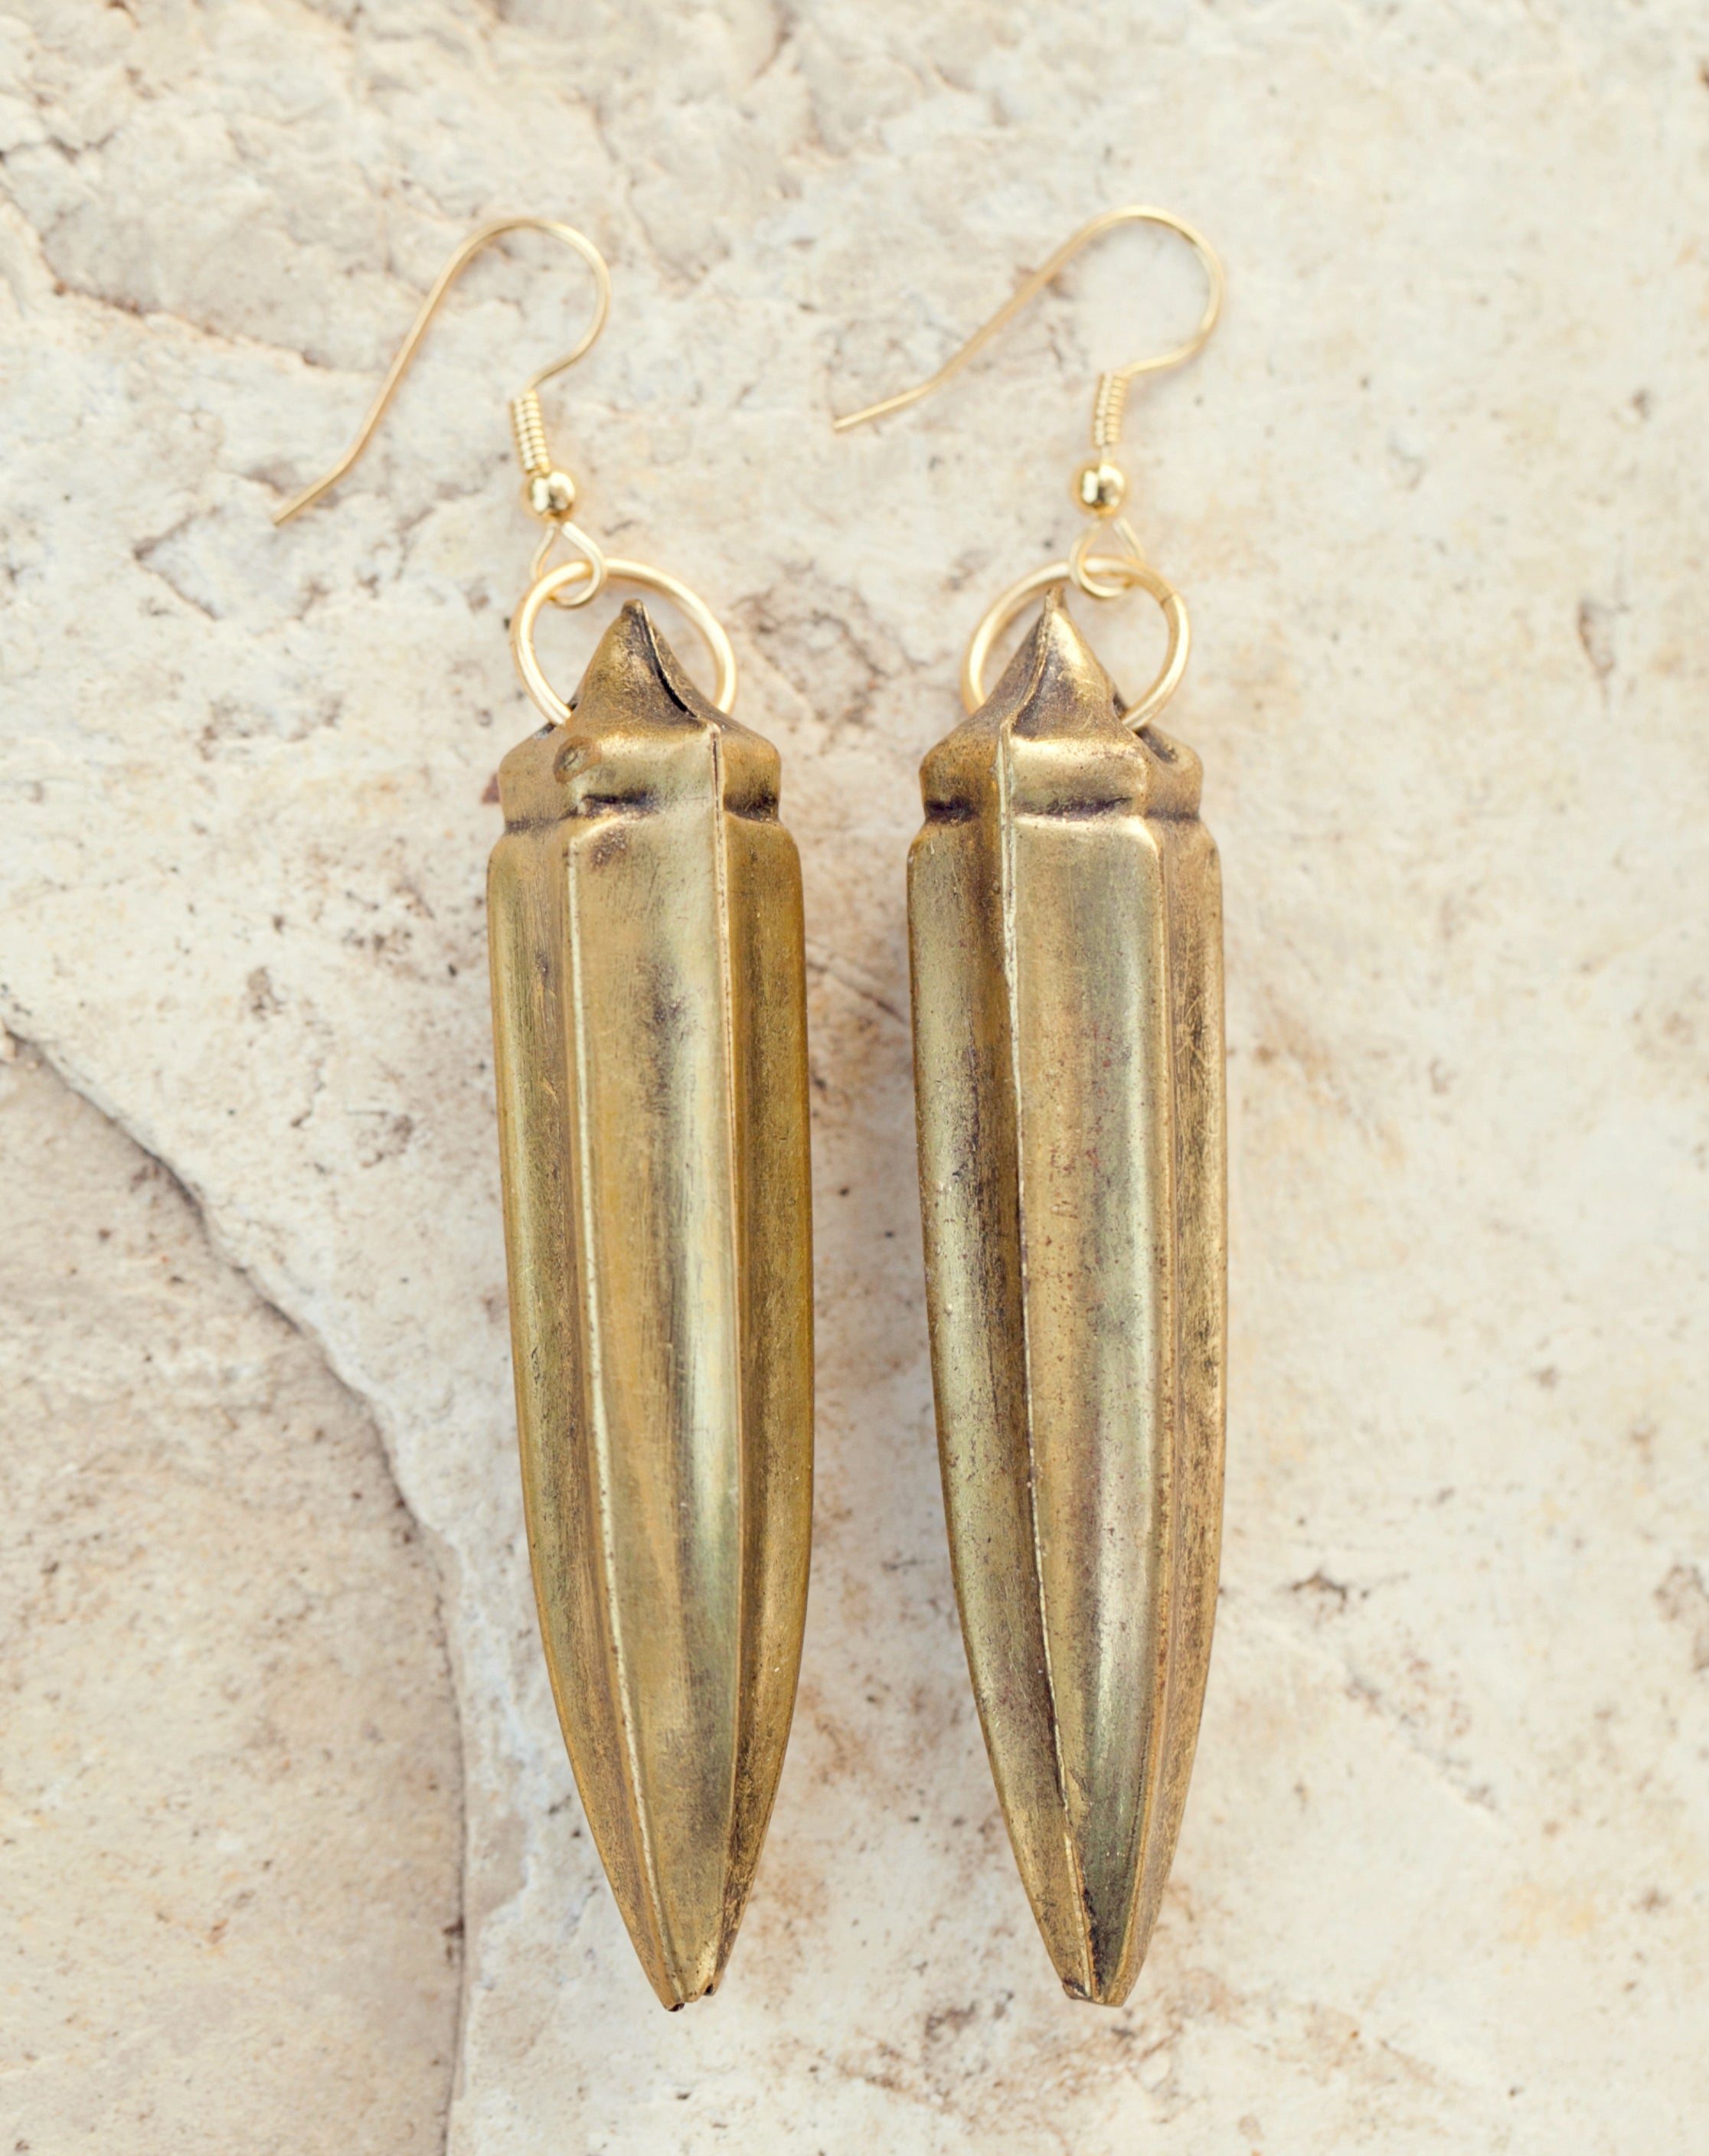 Antique brass okra earrings